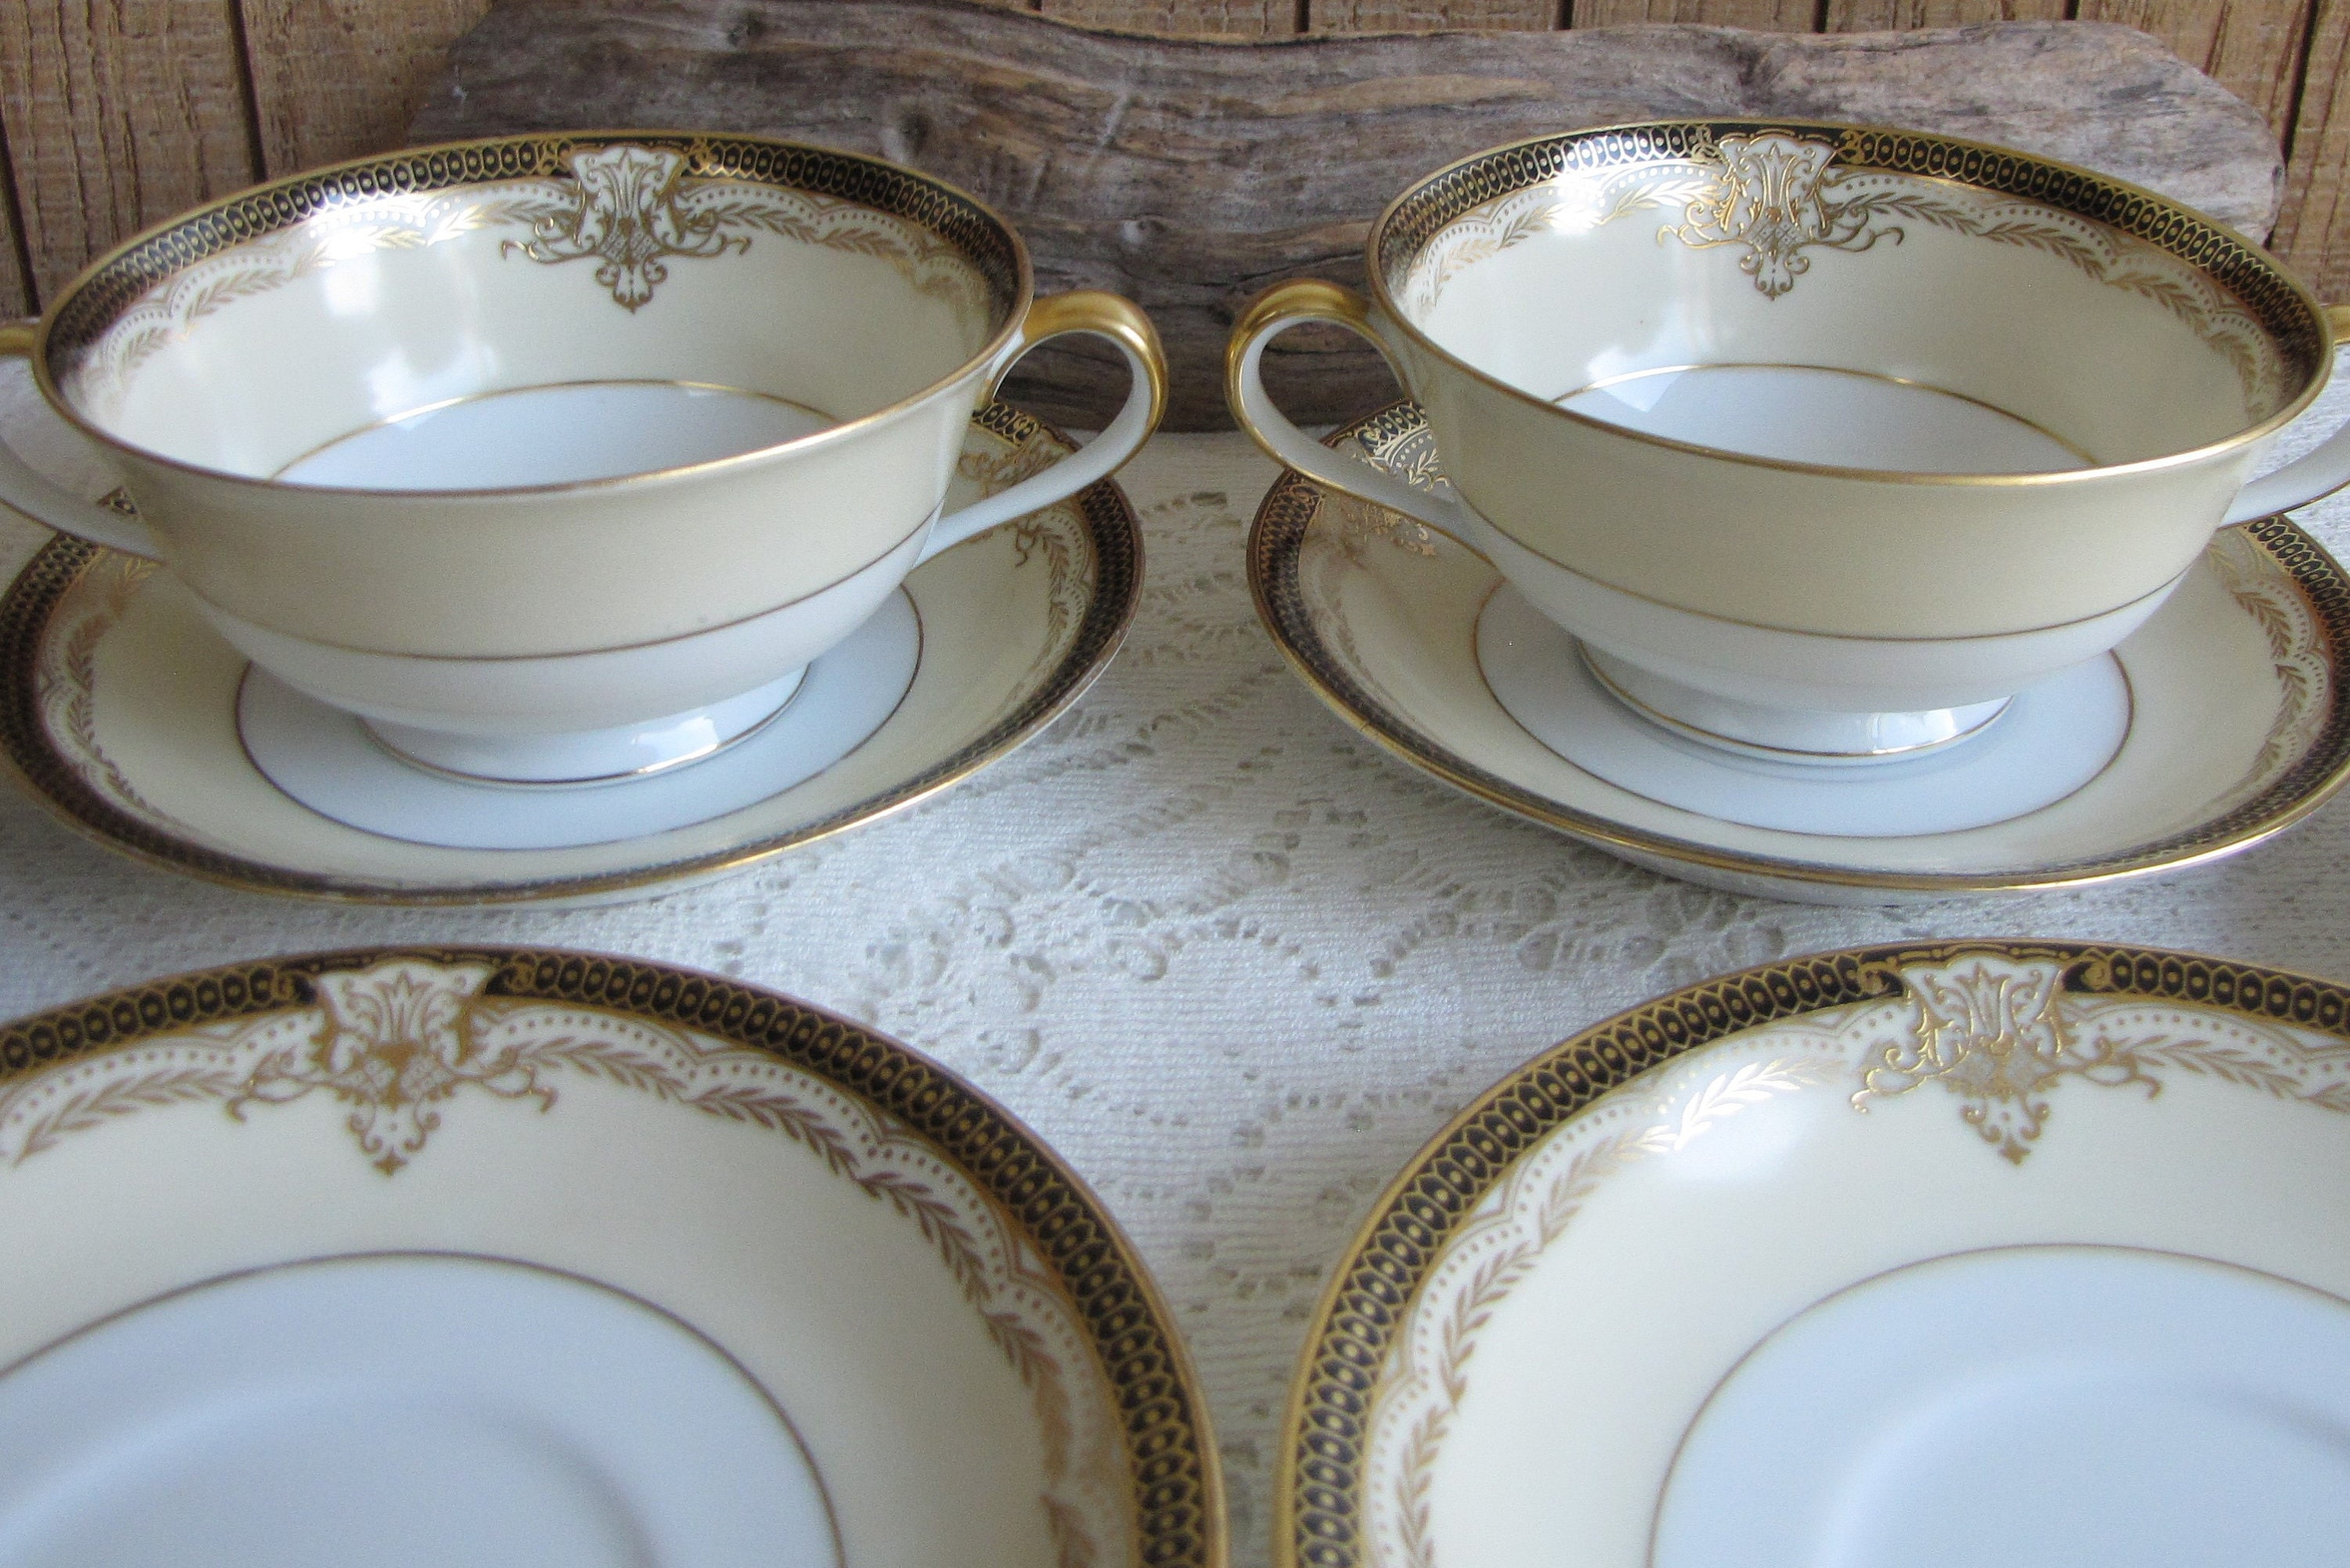 Piece Set 8 Noritake Valiere Cream Soup Bowls and Saucers Vintage Dinnerware and Replacements Eight